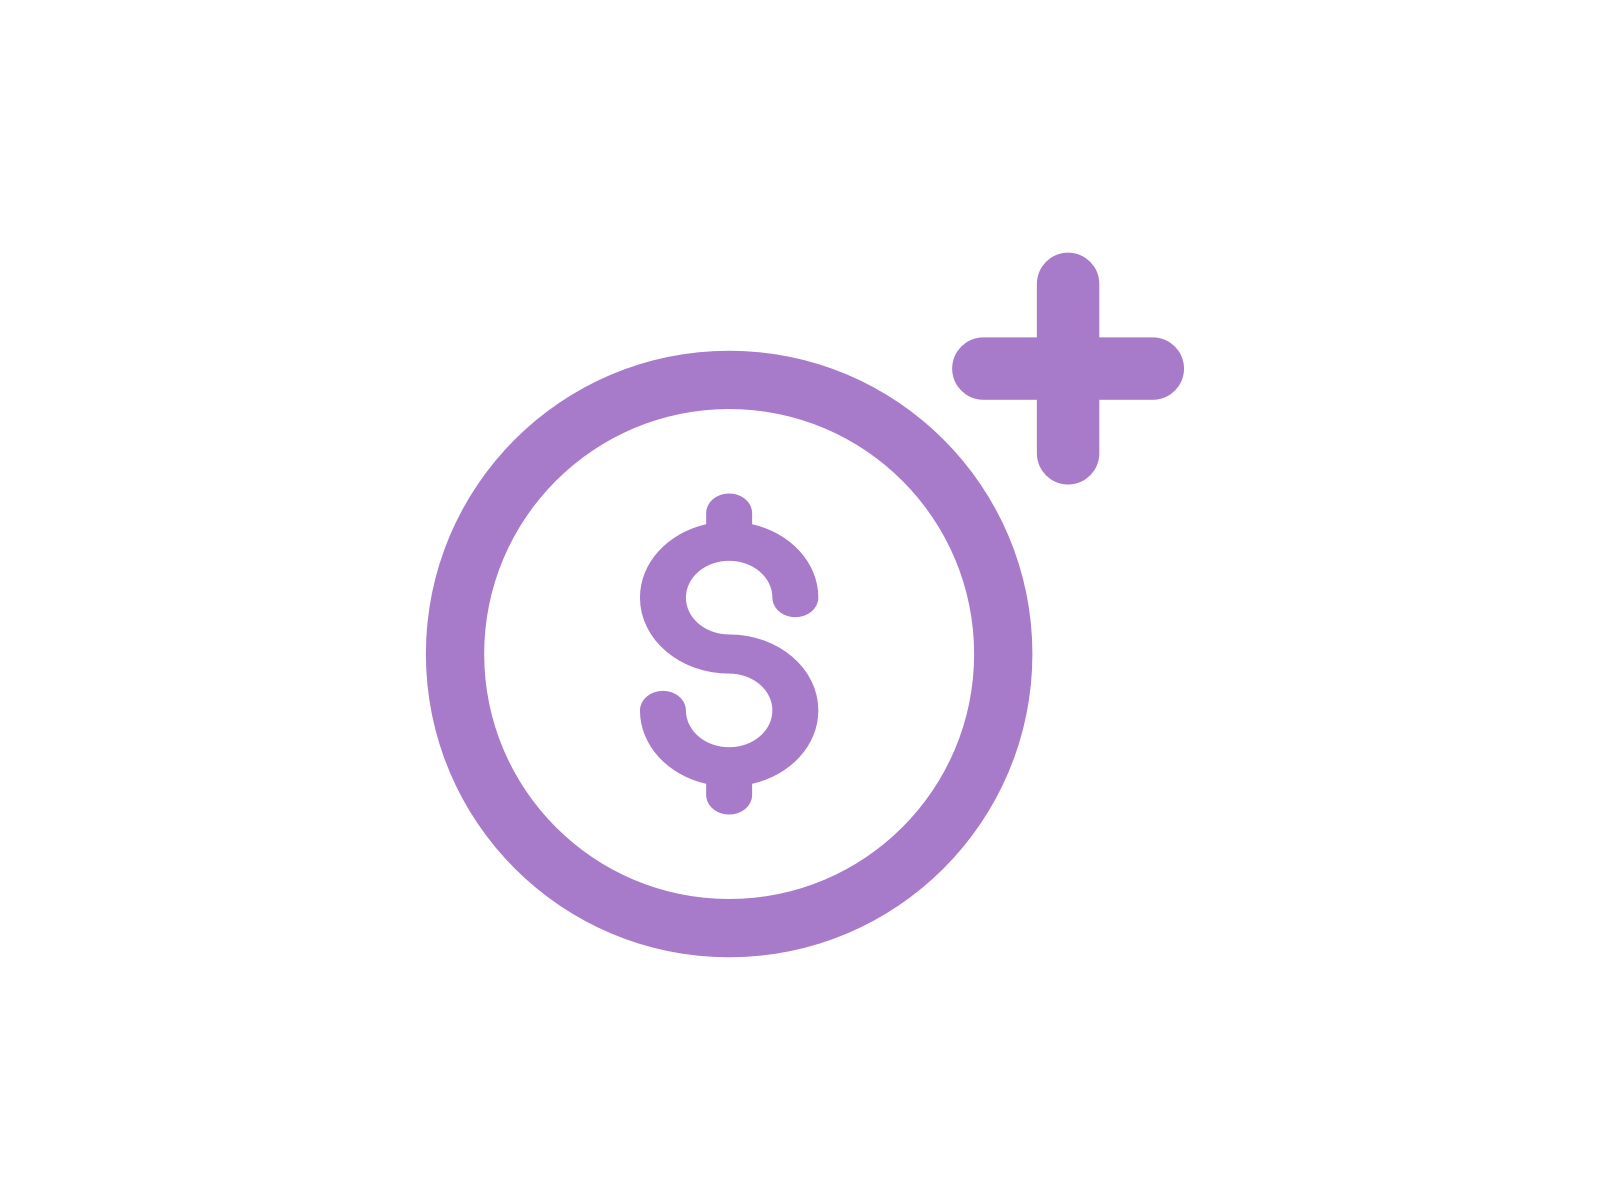 2-Click Frictionless Checkout